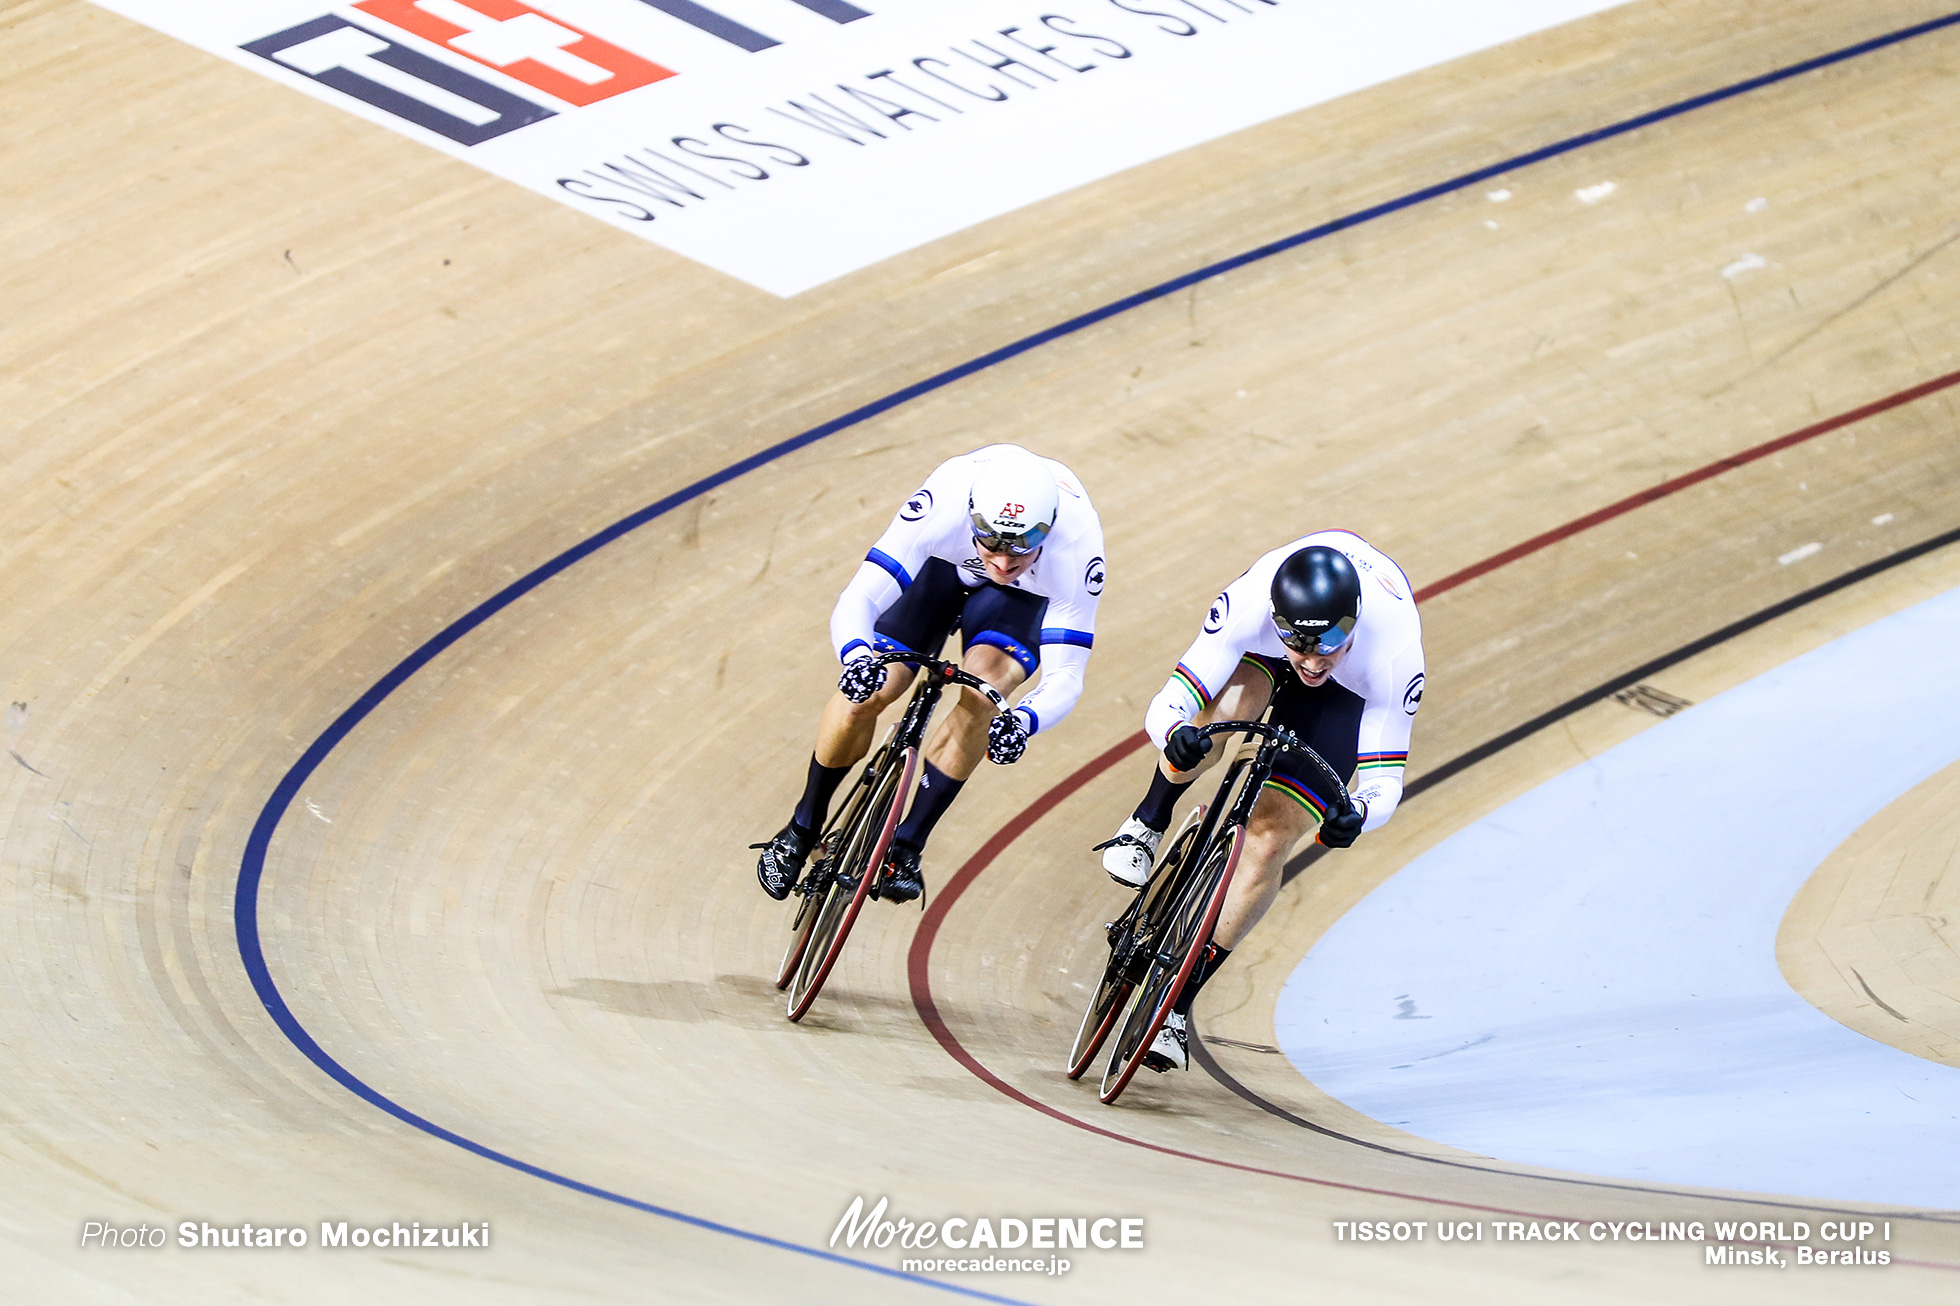 Finals / Men's Sprint / TISSOT UCI TRACK CYCLING WORLD CUP I, Minsk, Beralus